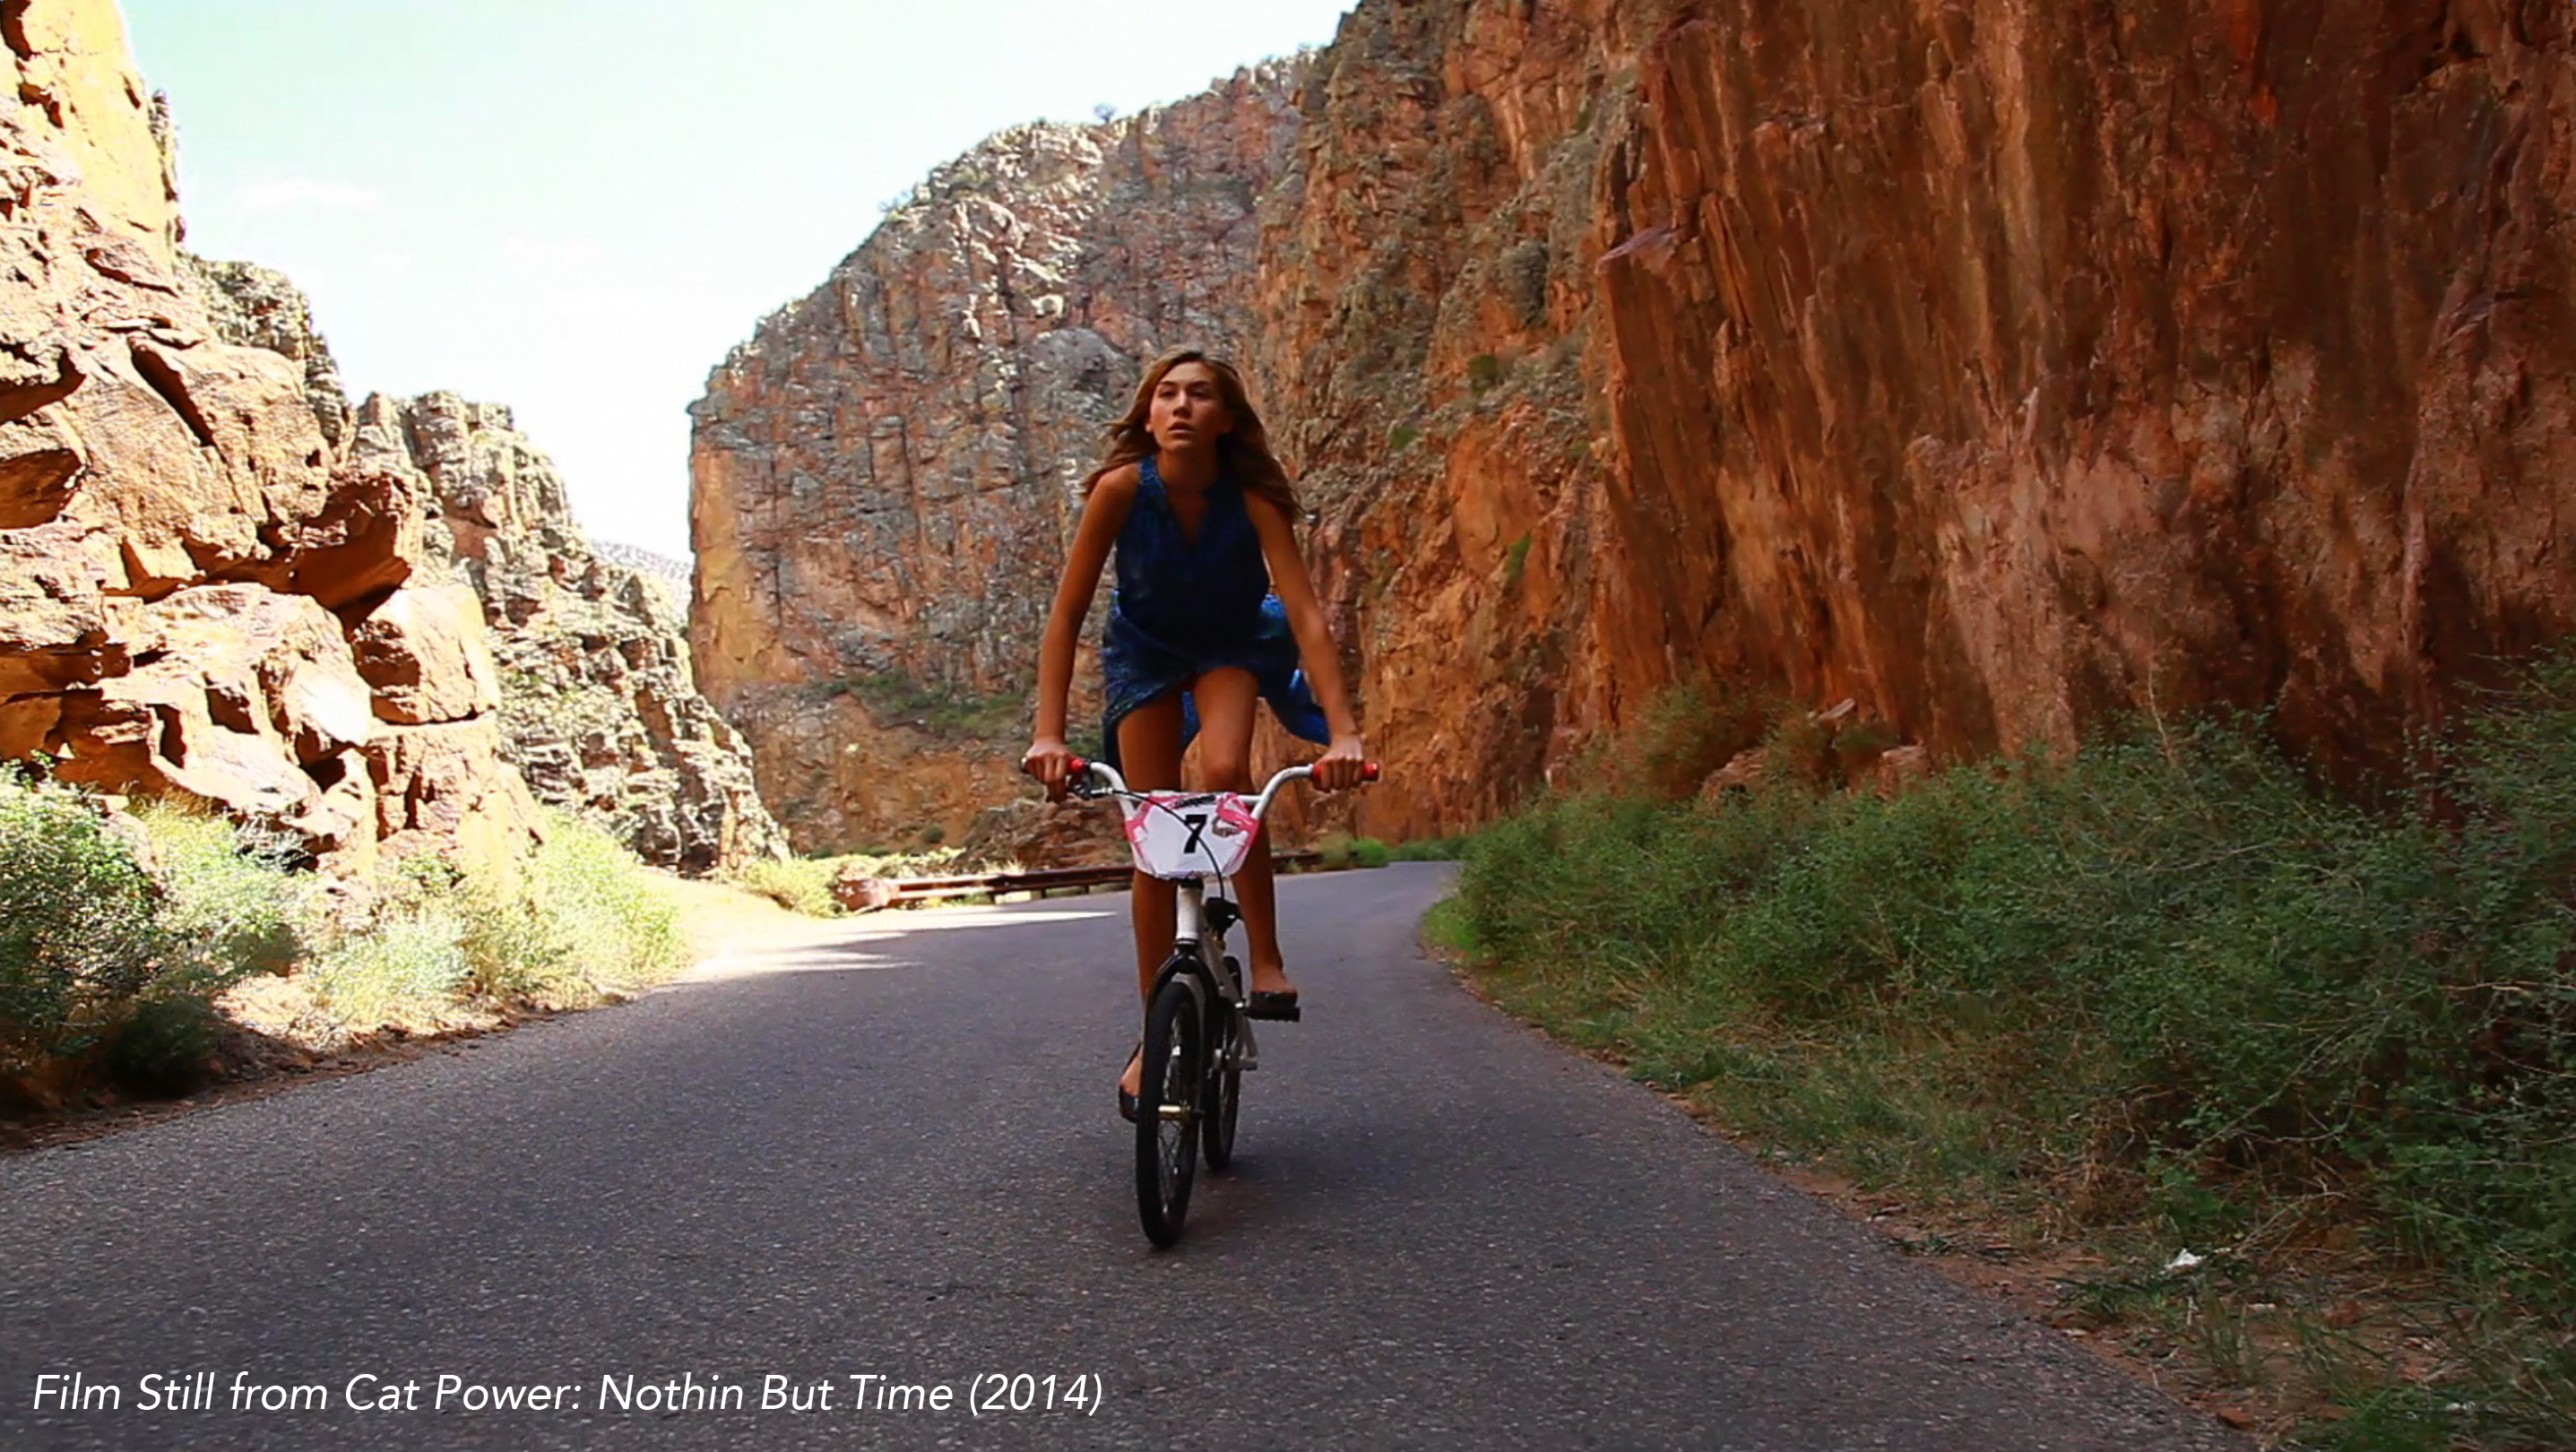 Film Still from Cat Power: Nothin But Time (2014)